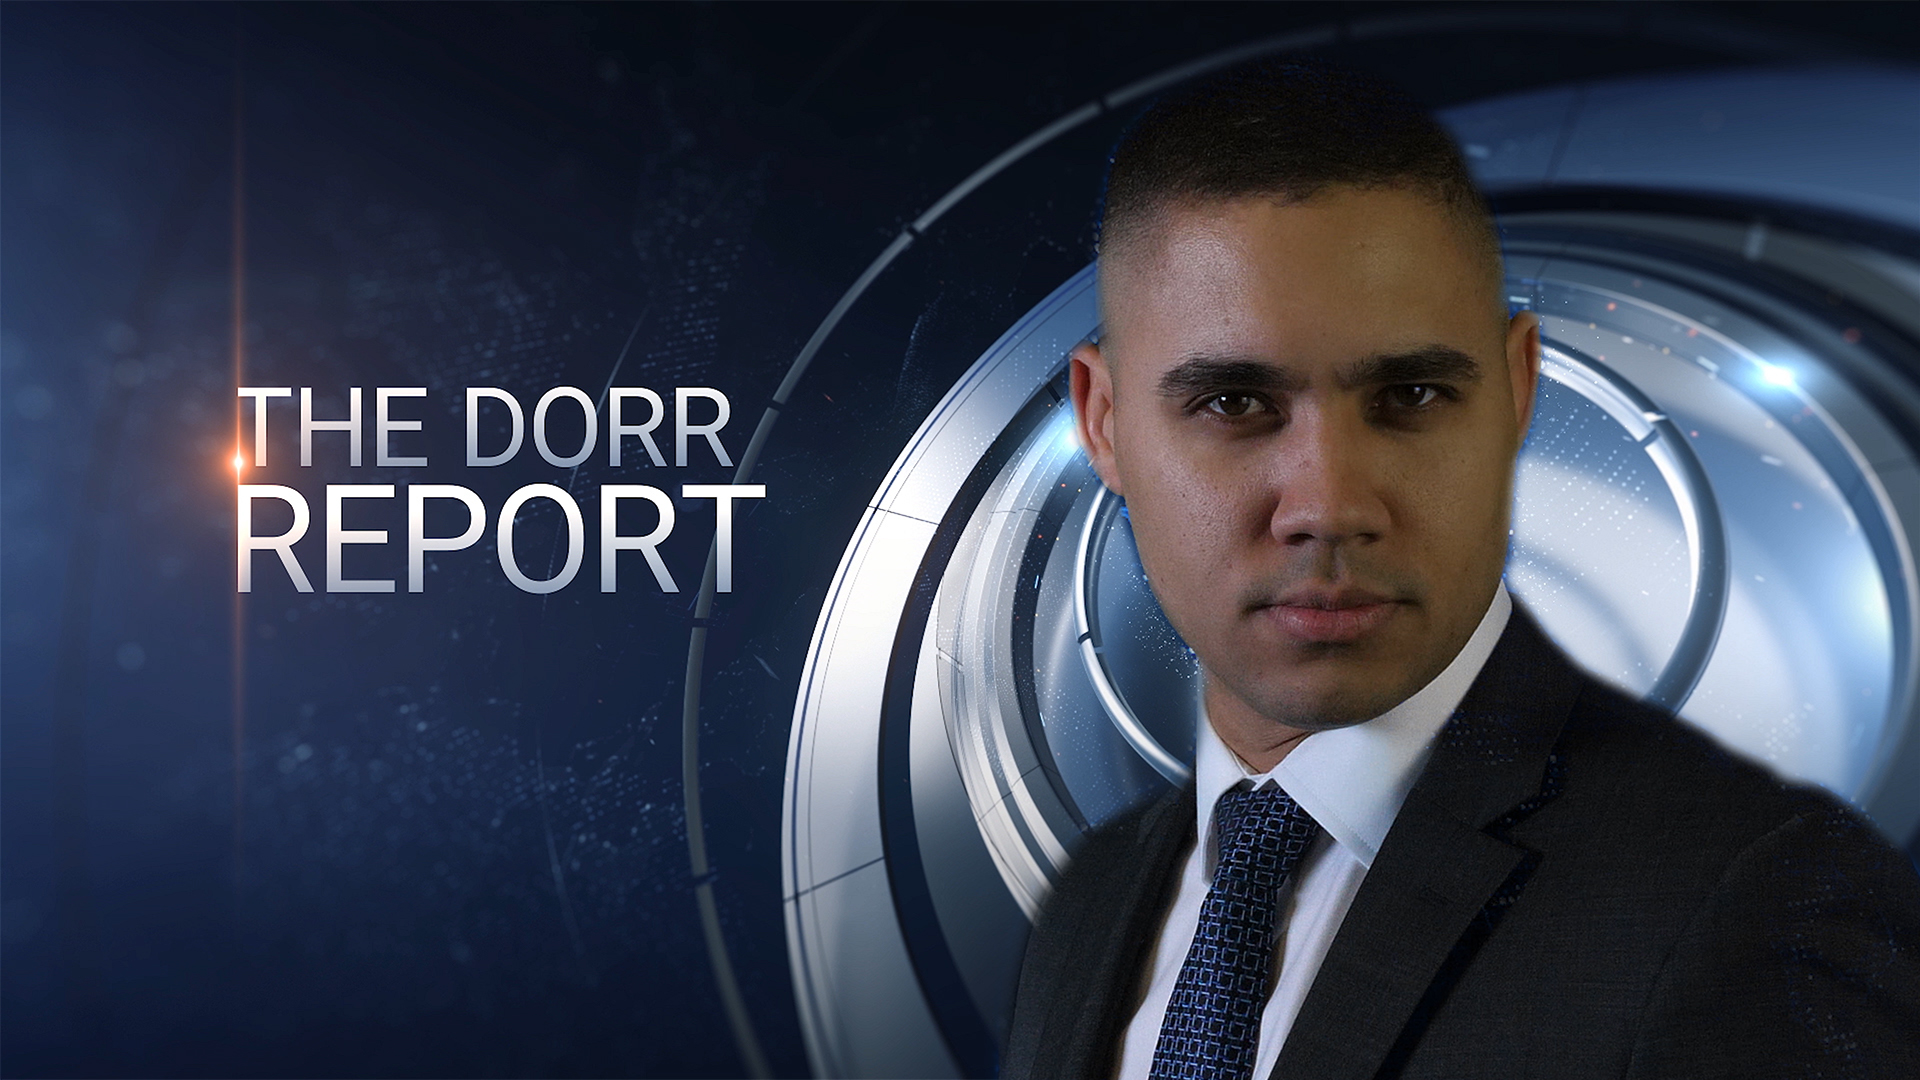 The Dorr Report: Booms & Busts